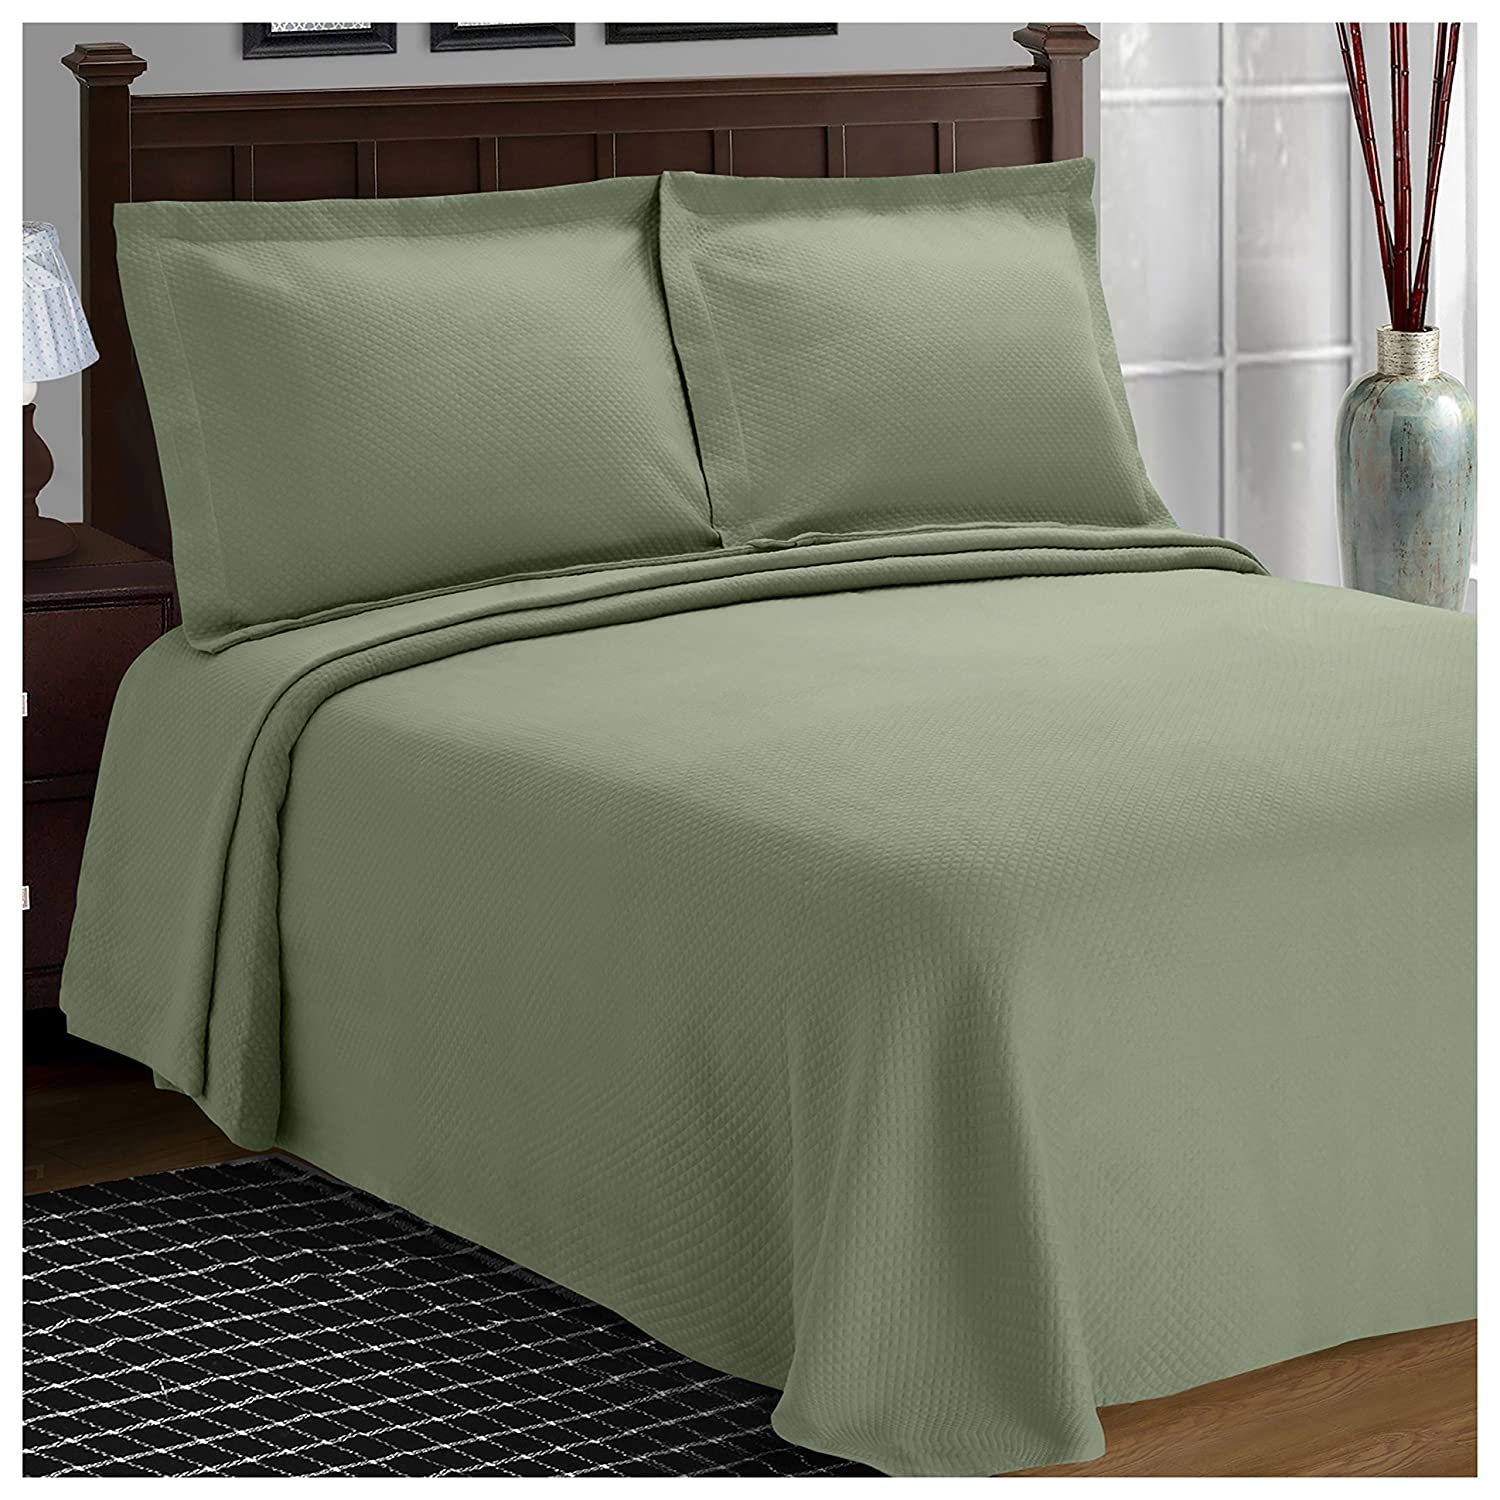 (Full, Sage) - Superior Diamond Solitaire Jacquard Matelasse 100% Premium Cotton Bedspread with Matching Shams, Full, Sage B01NBB1OIB セージ フル